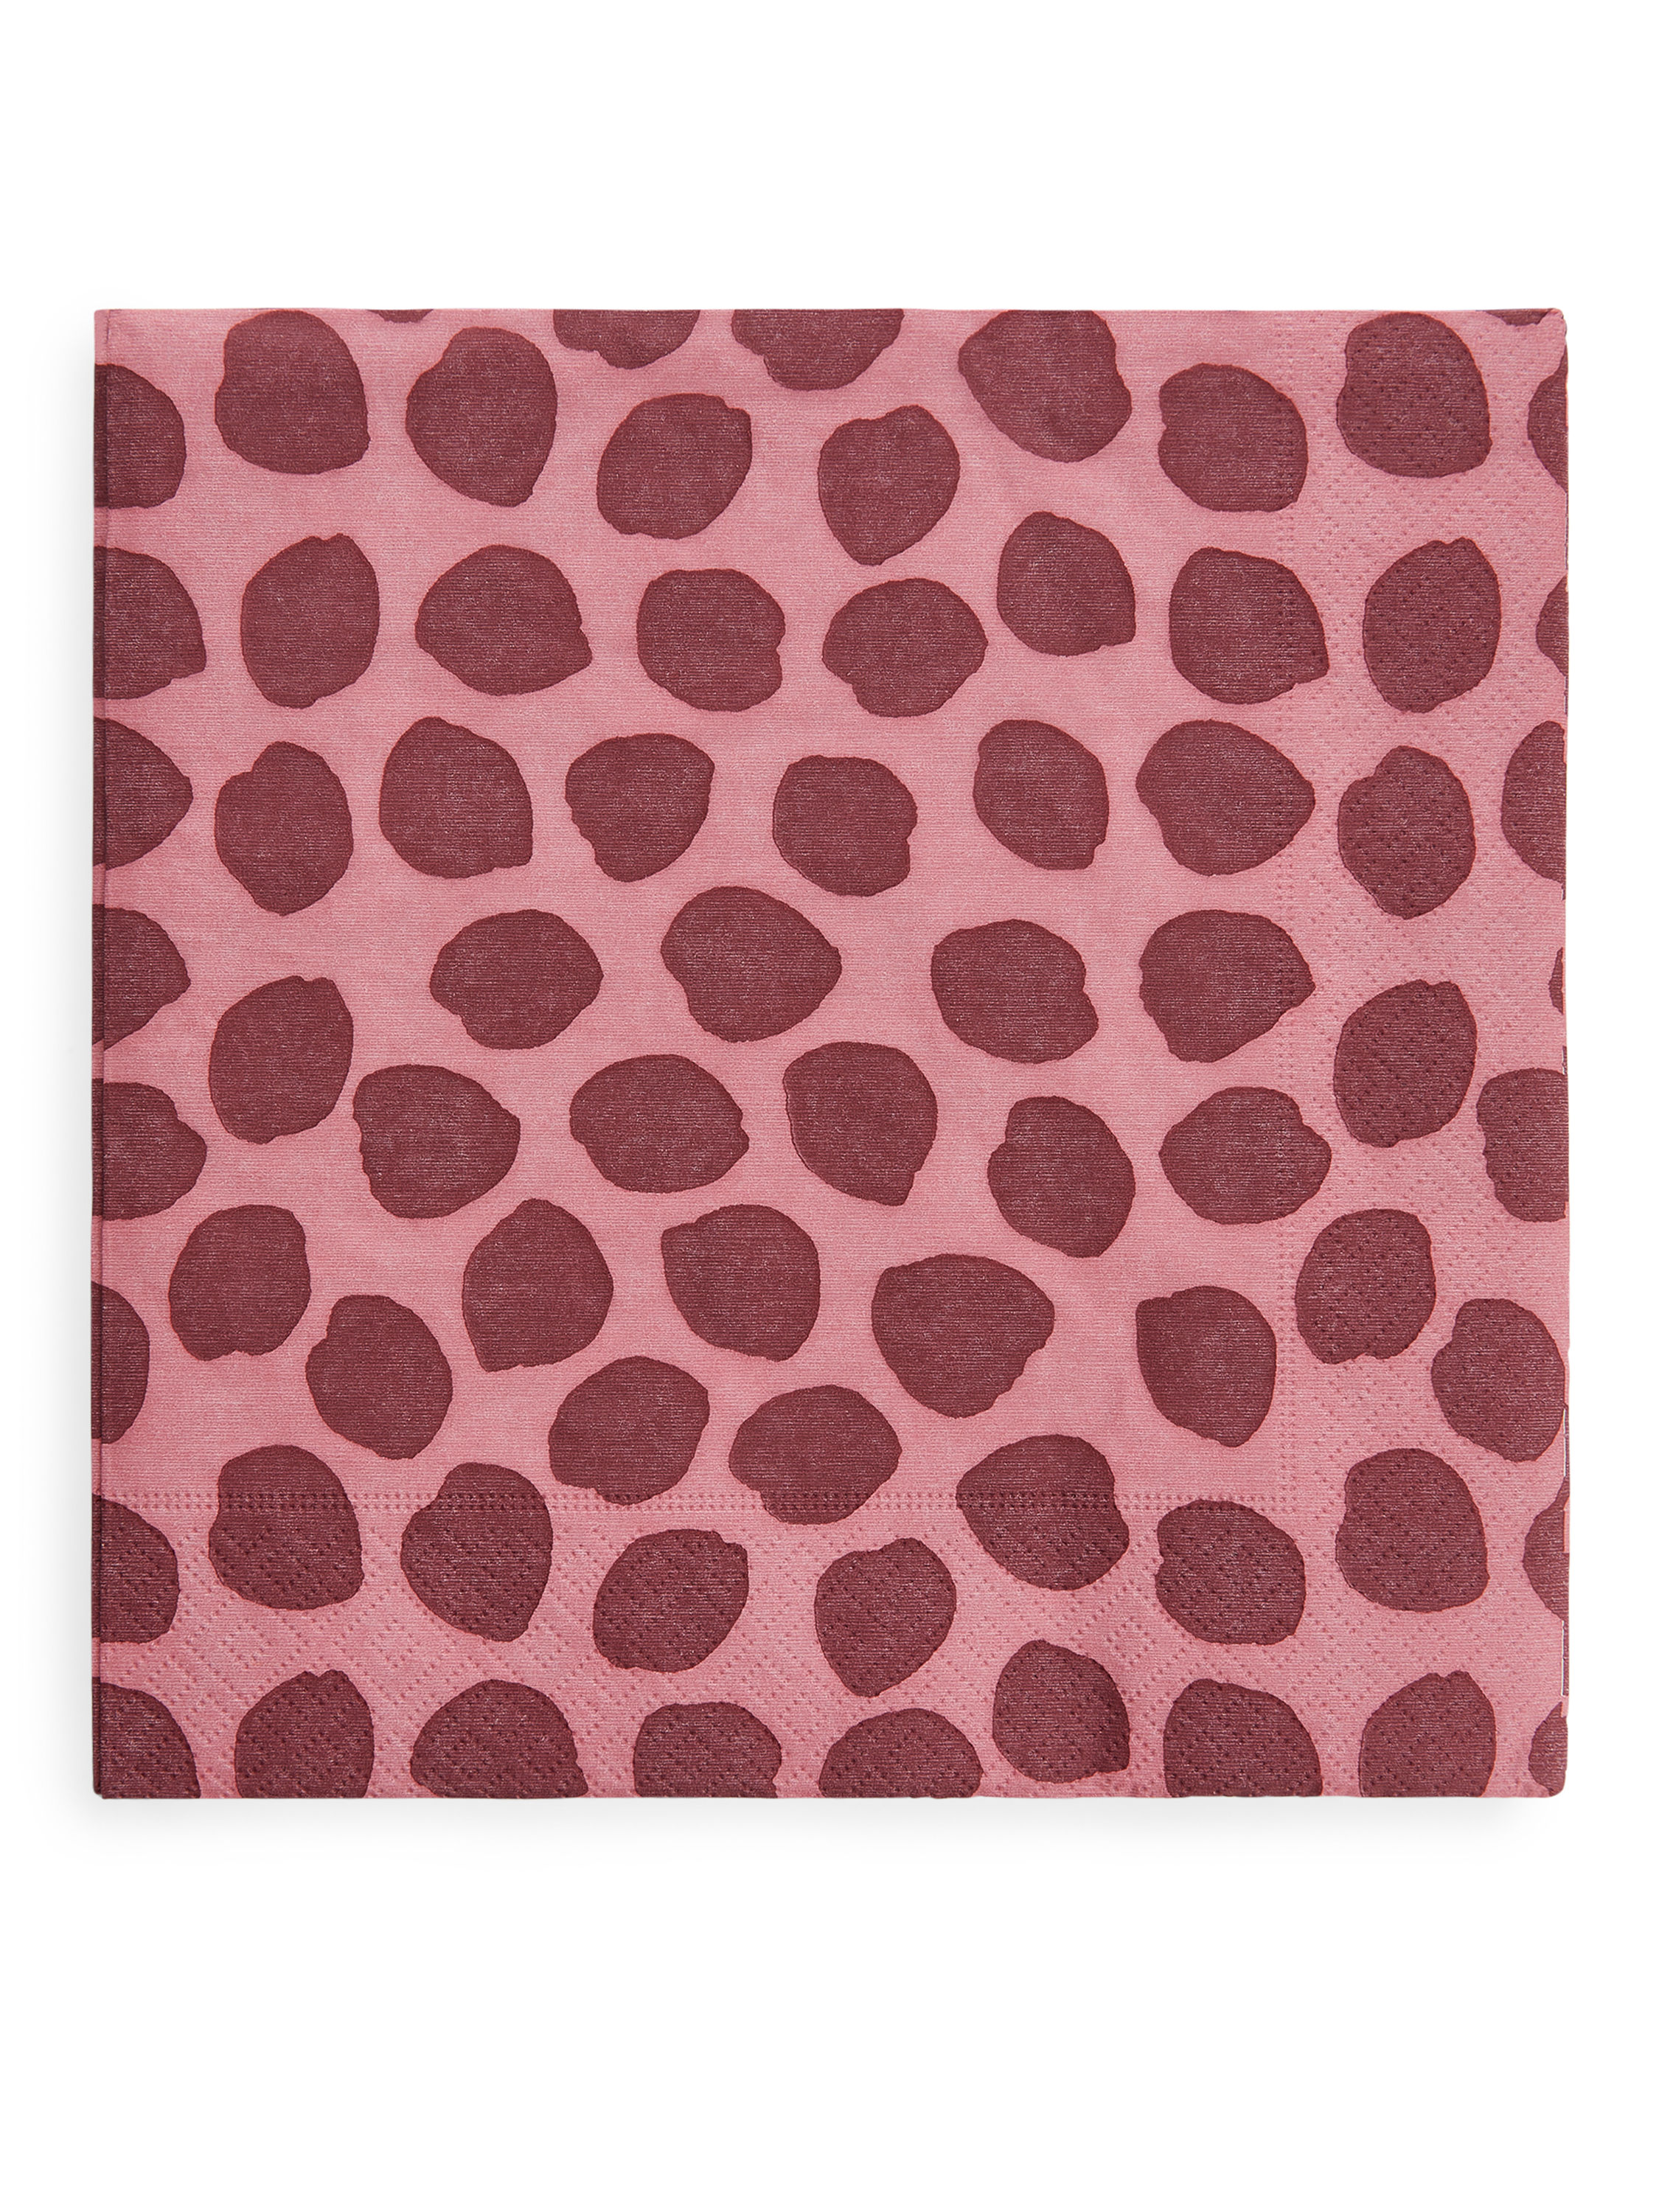 Fabric Swatch image of Arket paper napkins in pink